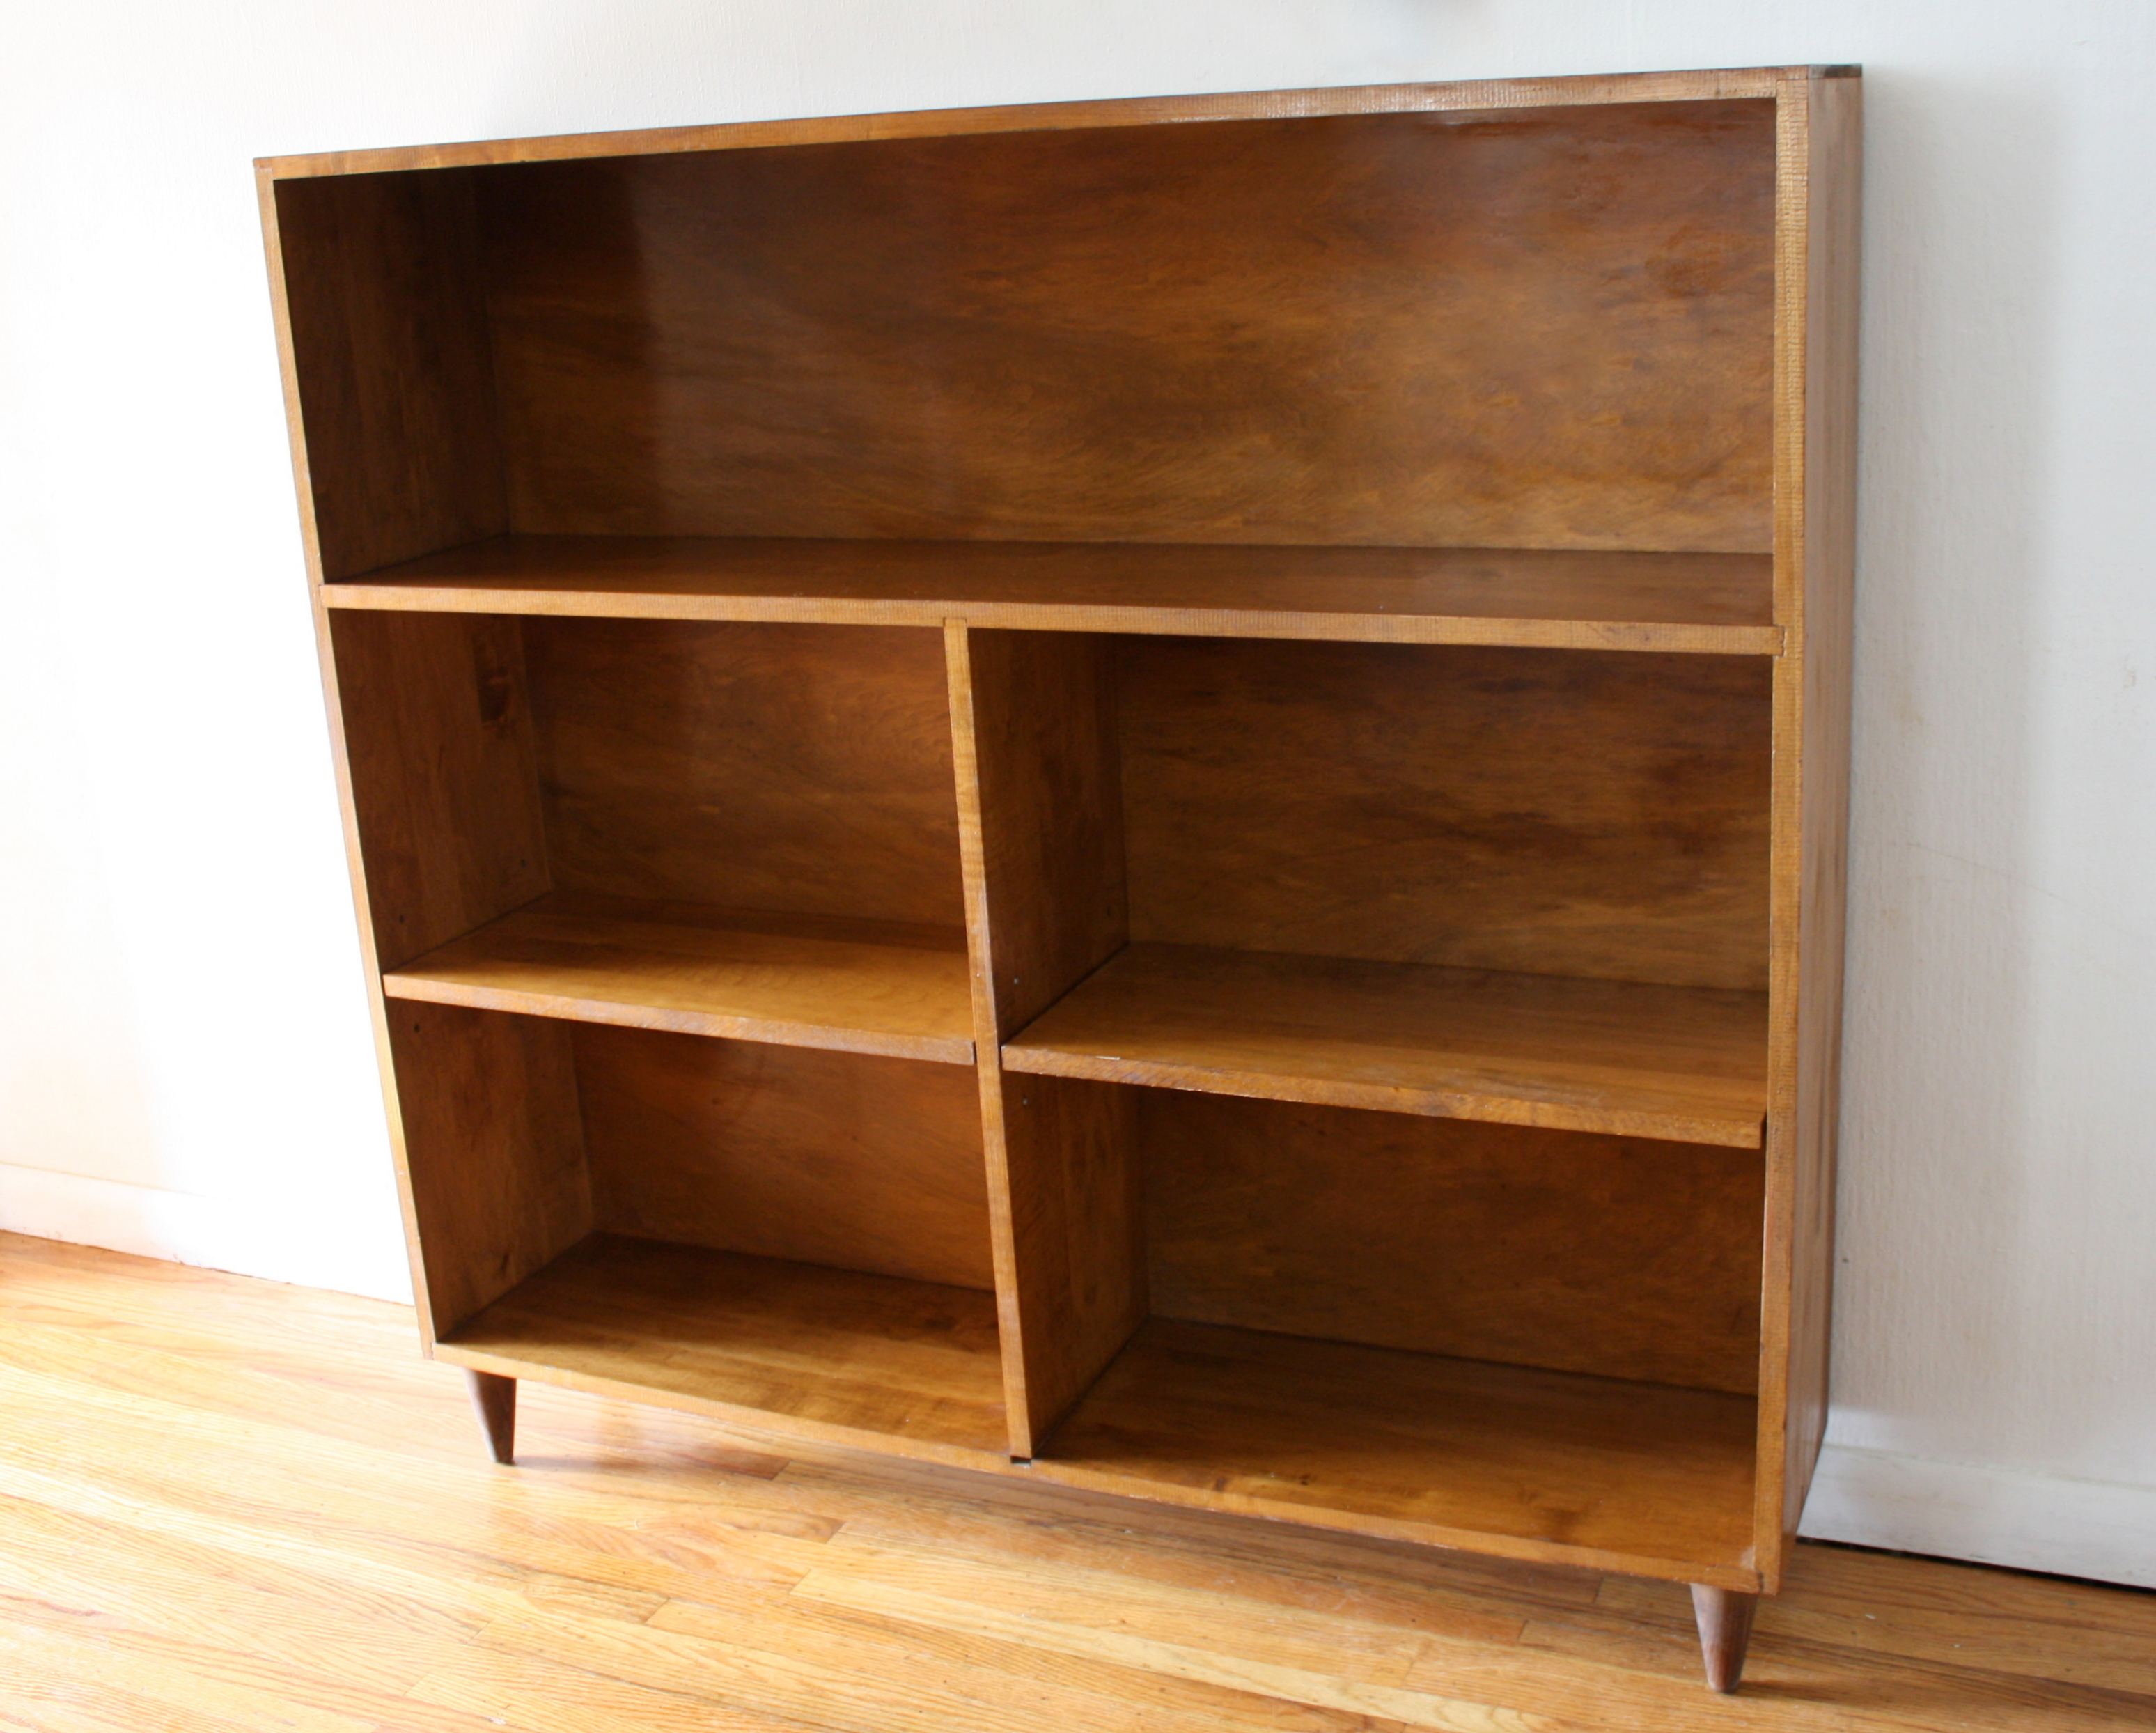 Book Shelfs Mid Century Modern Bookshelves And Bookcases | Picked Vintage